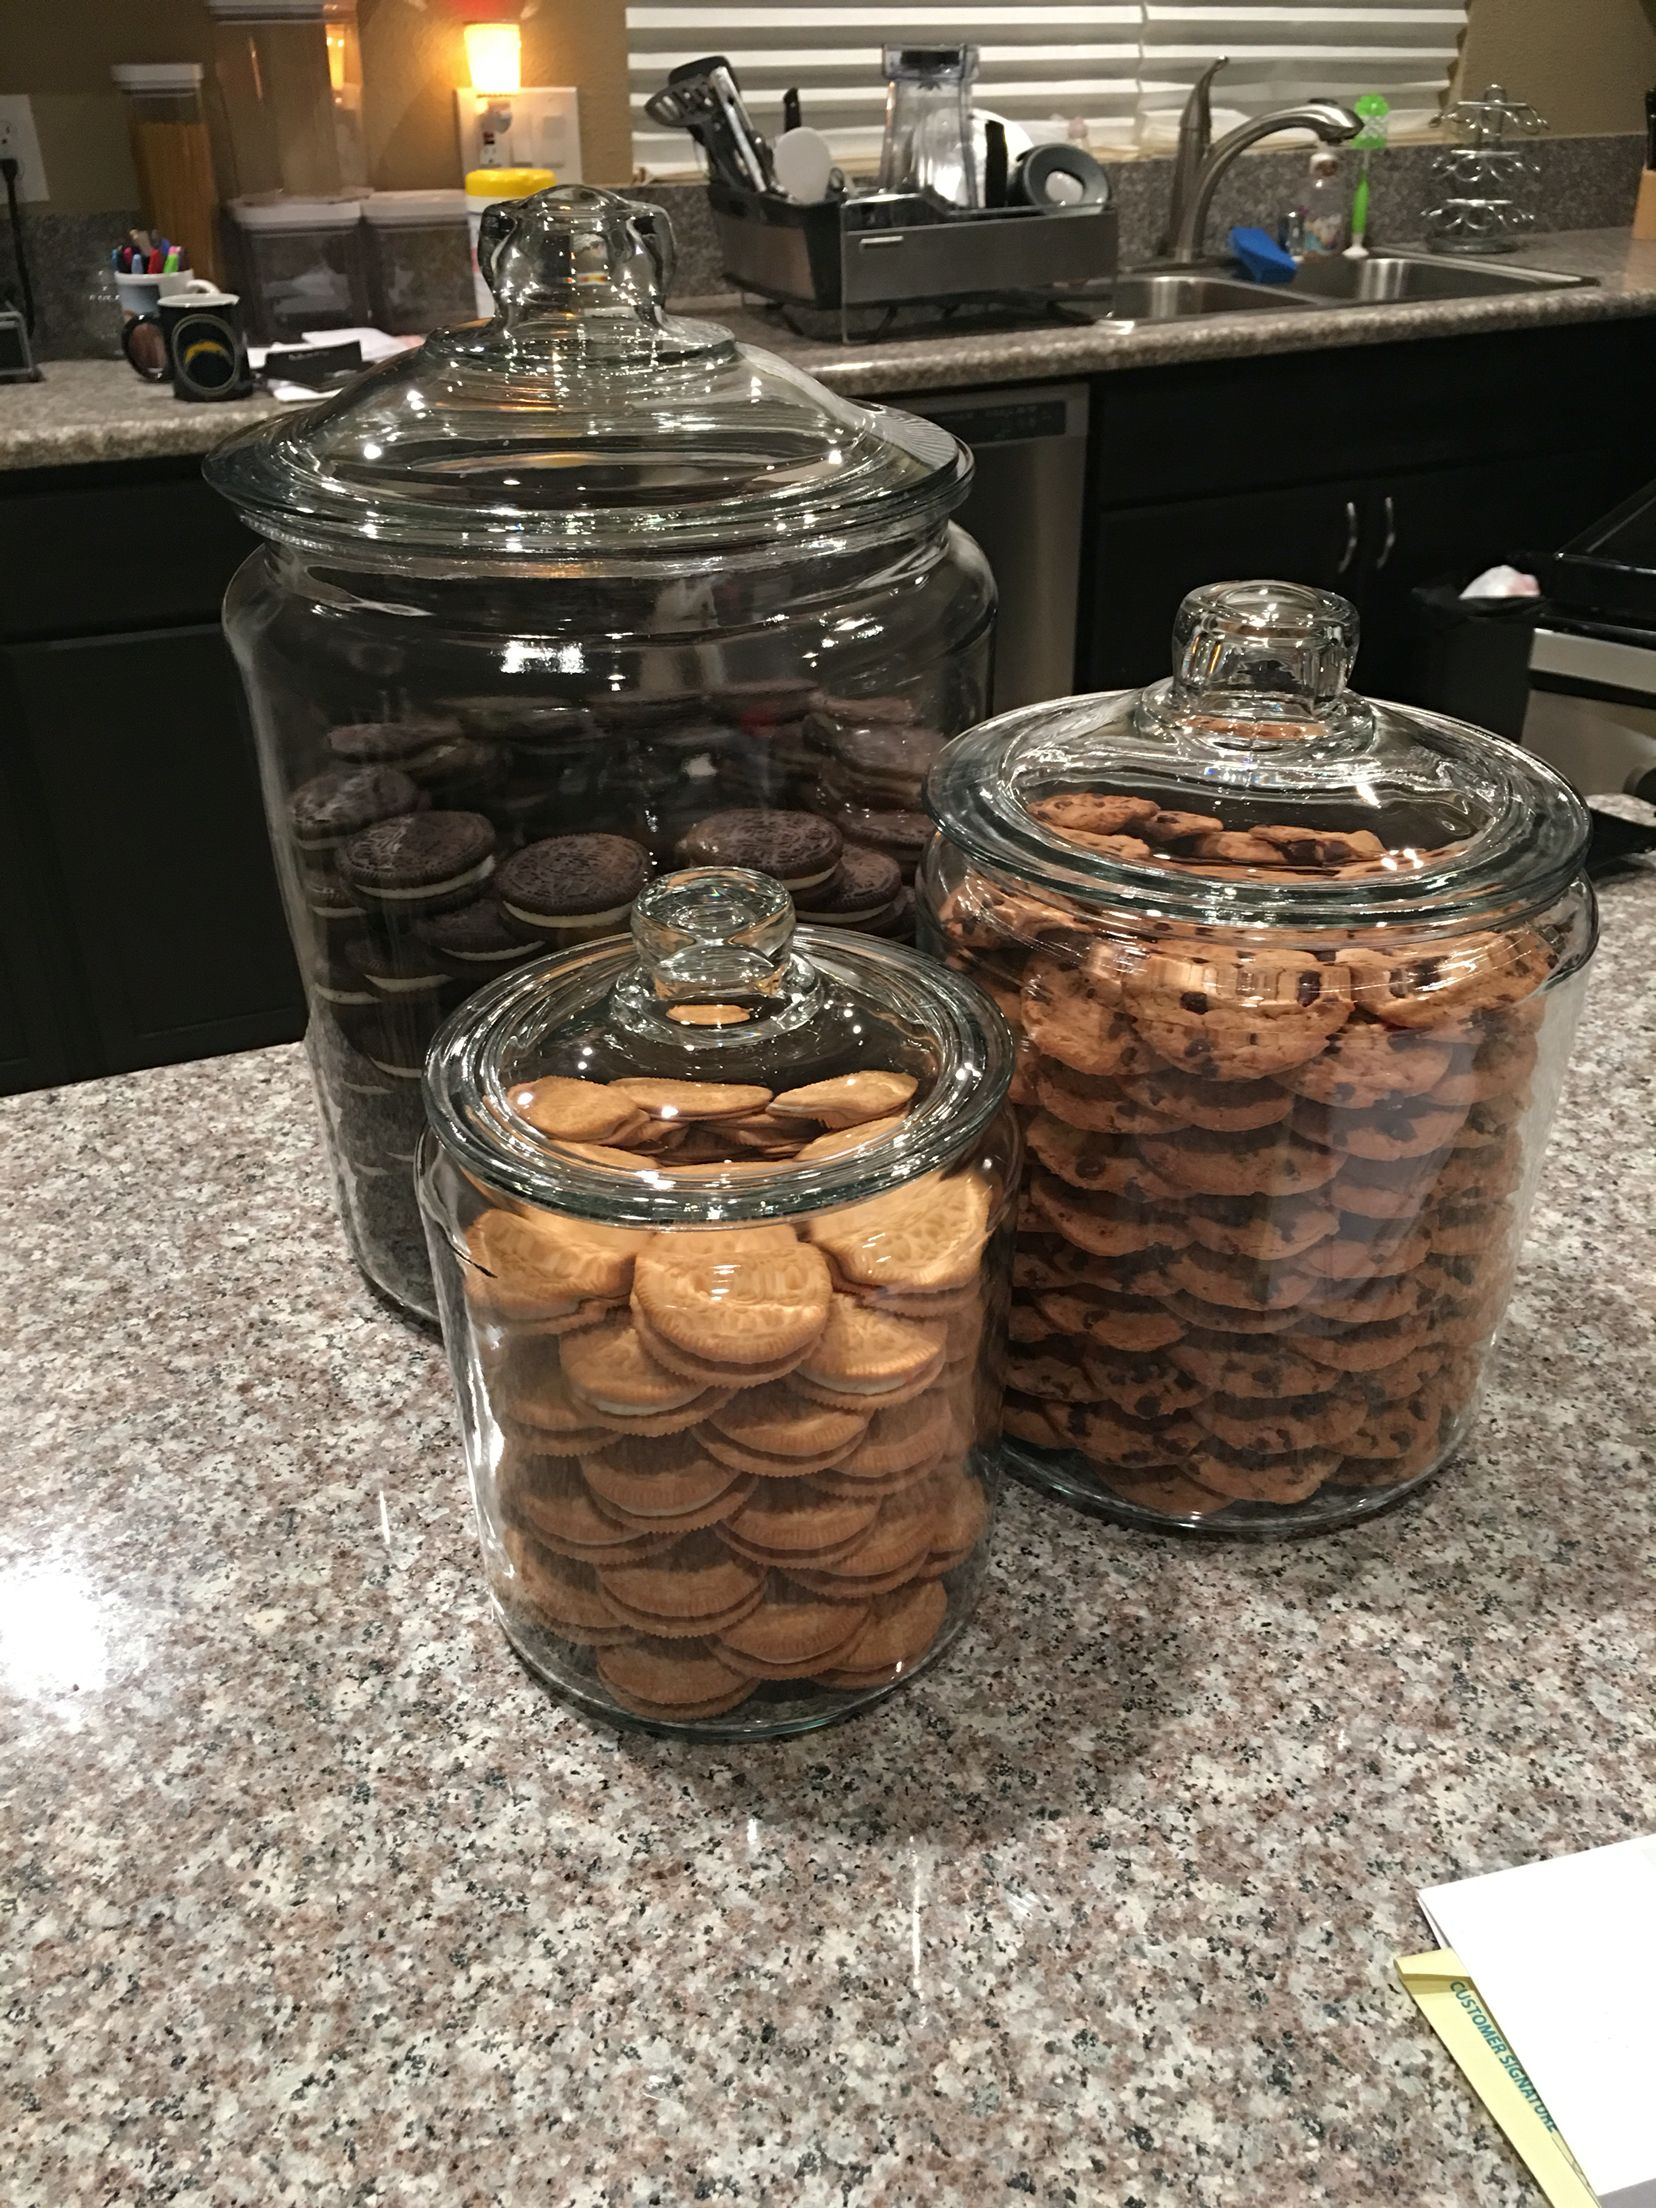 Khloe Kardashian's copy cat cookie jars - loved these jars she does and it was SO easy!Khloe even has a video tutorial explaining